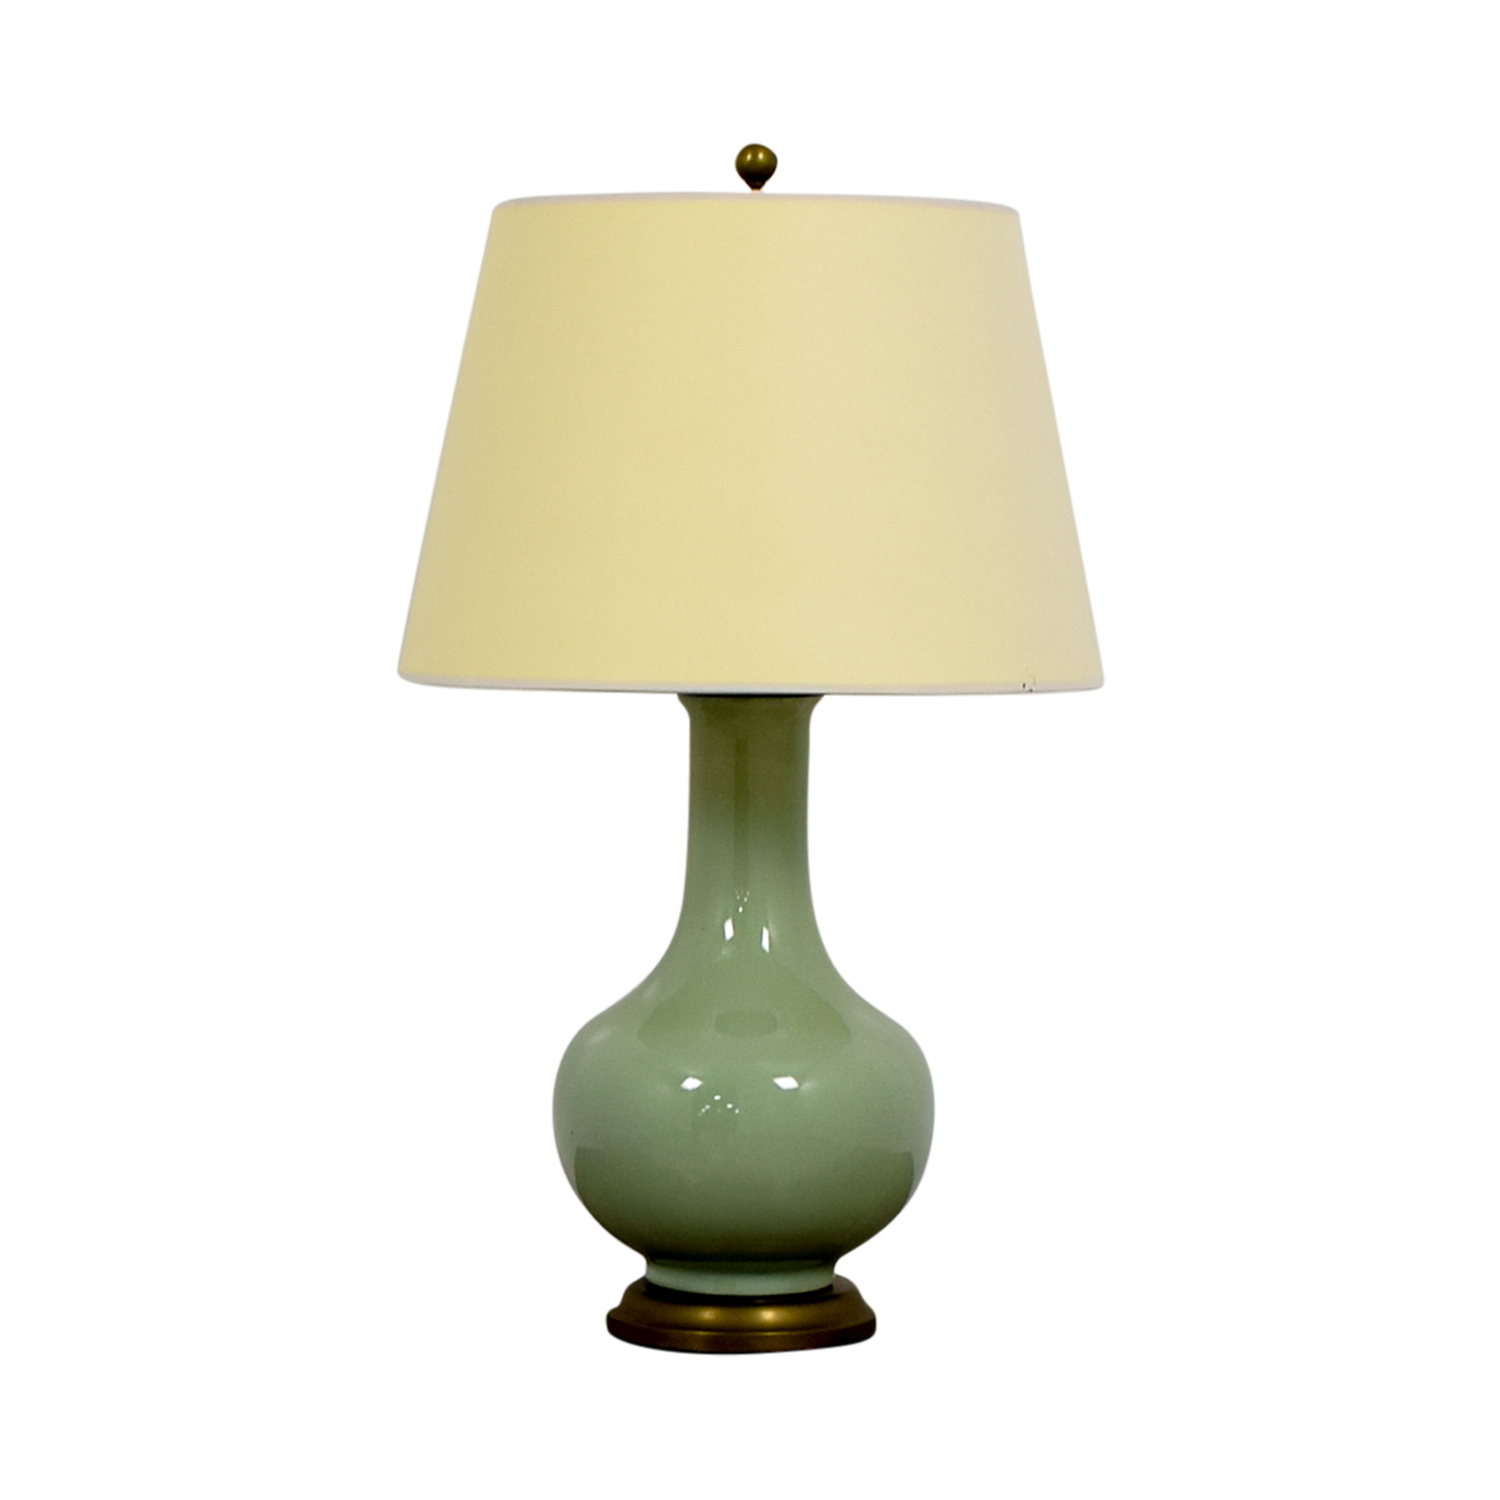 Williams Sonoma Home Mint Green Ceramic and Brass Table Lamp Williams Sonoma Home